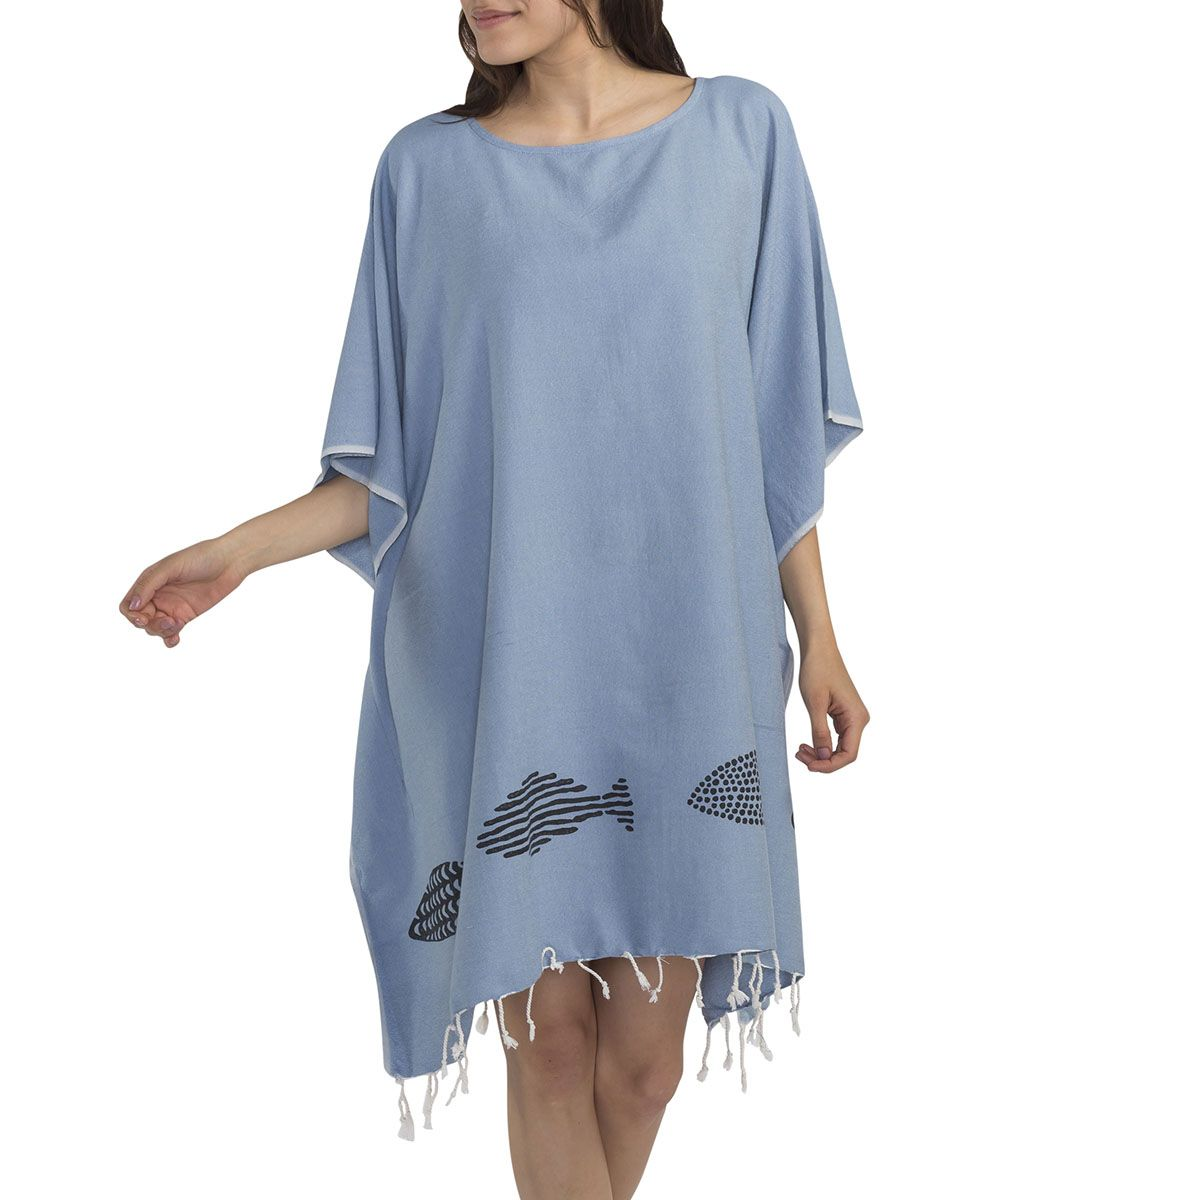 Tunic / Black Fish - Hand Printed - Blue